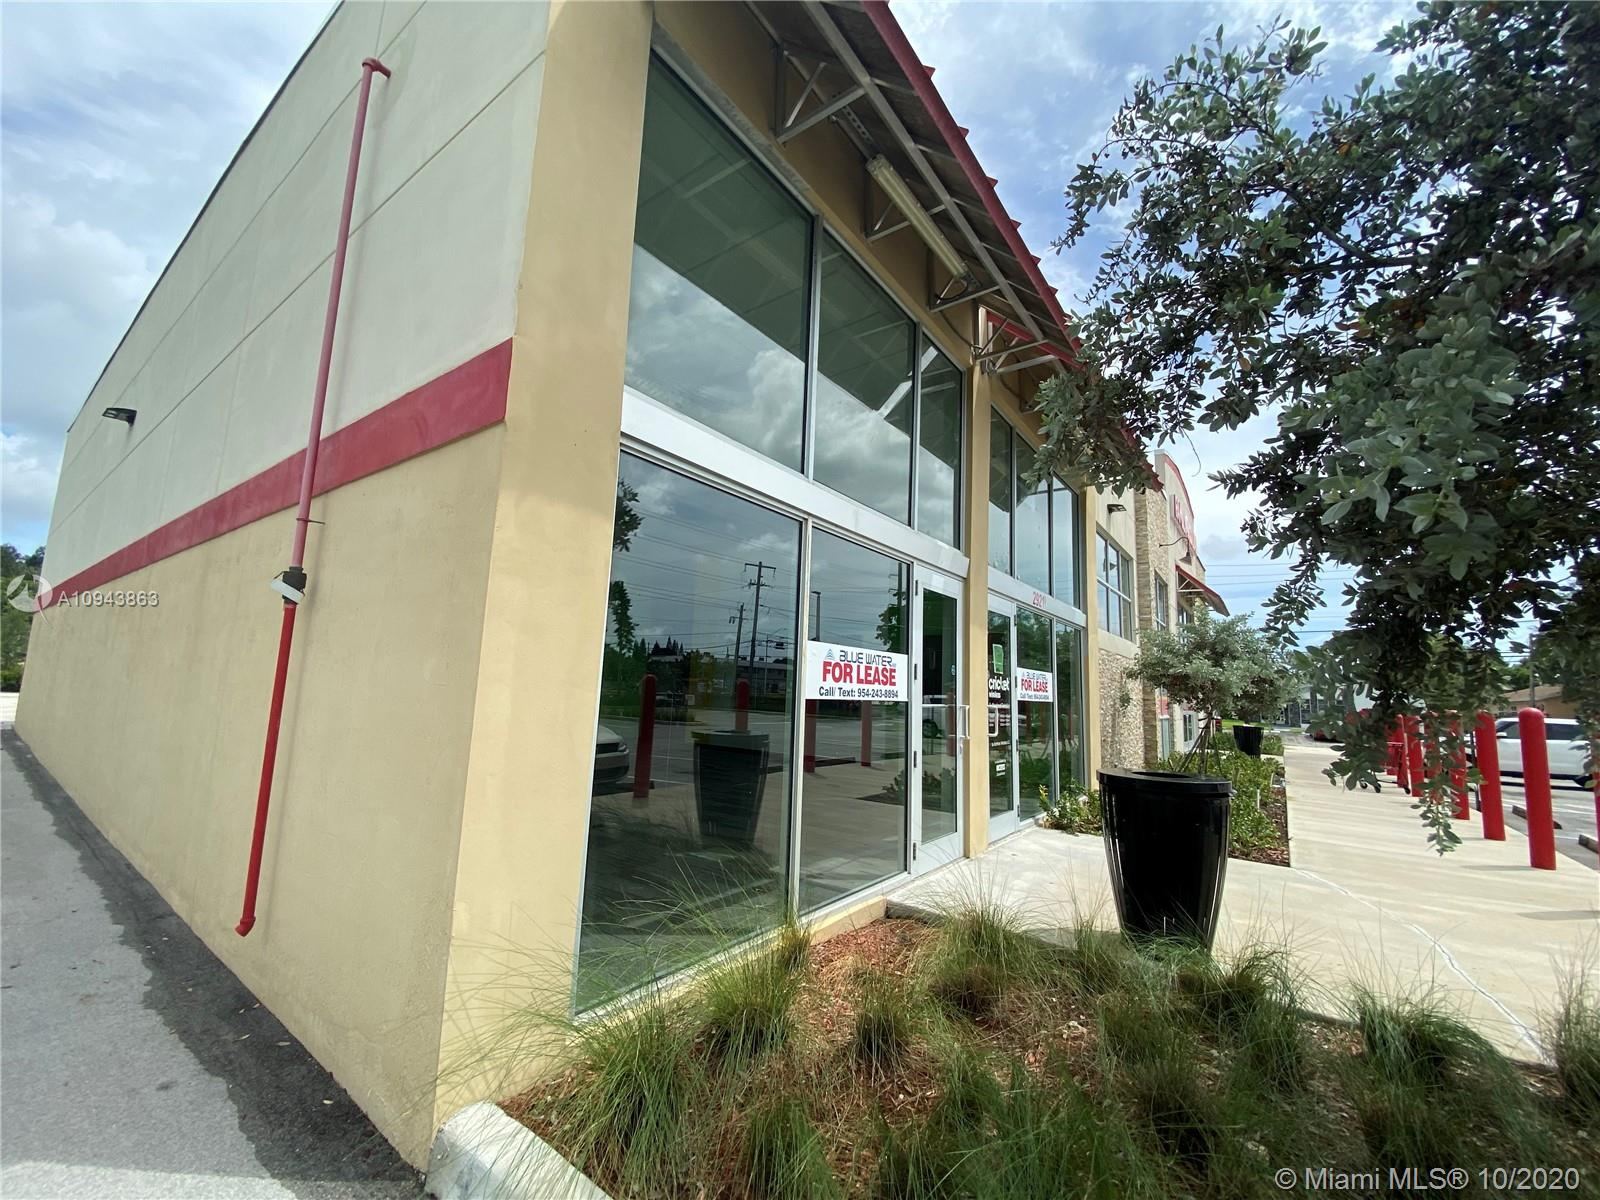 2911 Griffin Rd, Dania Beach, Florida 33312, ,Commercial Sale,For Sale,2911 Griffin Rd,A10943863